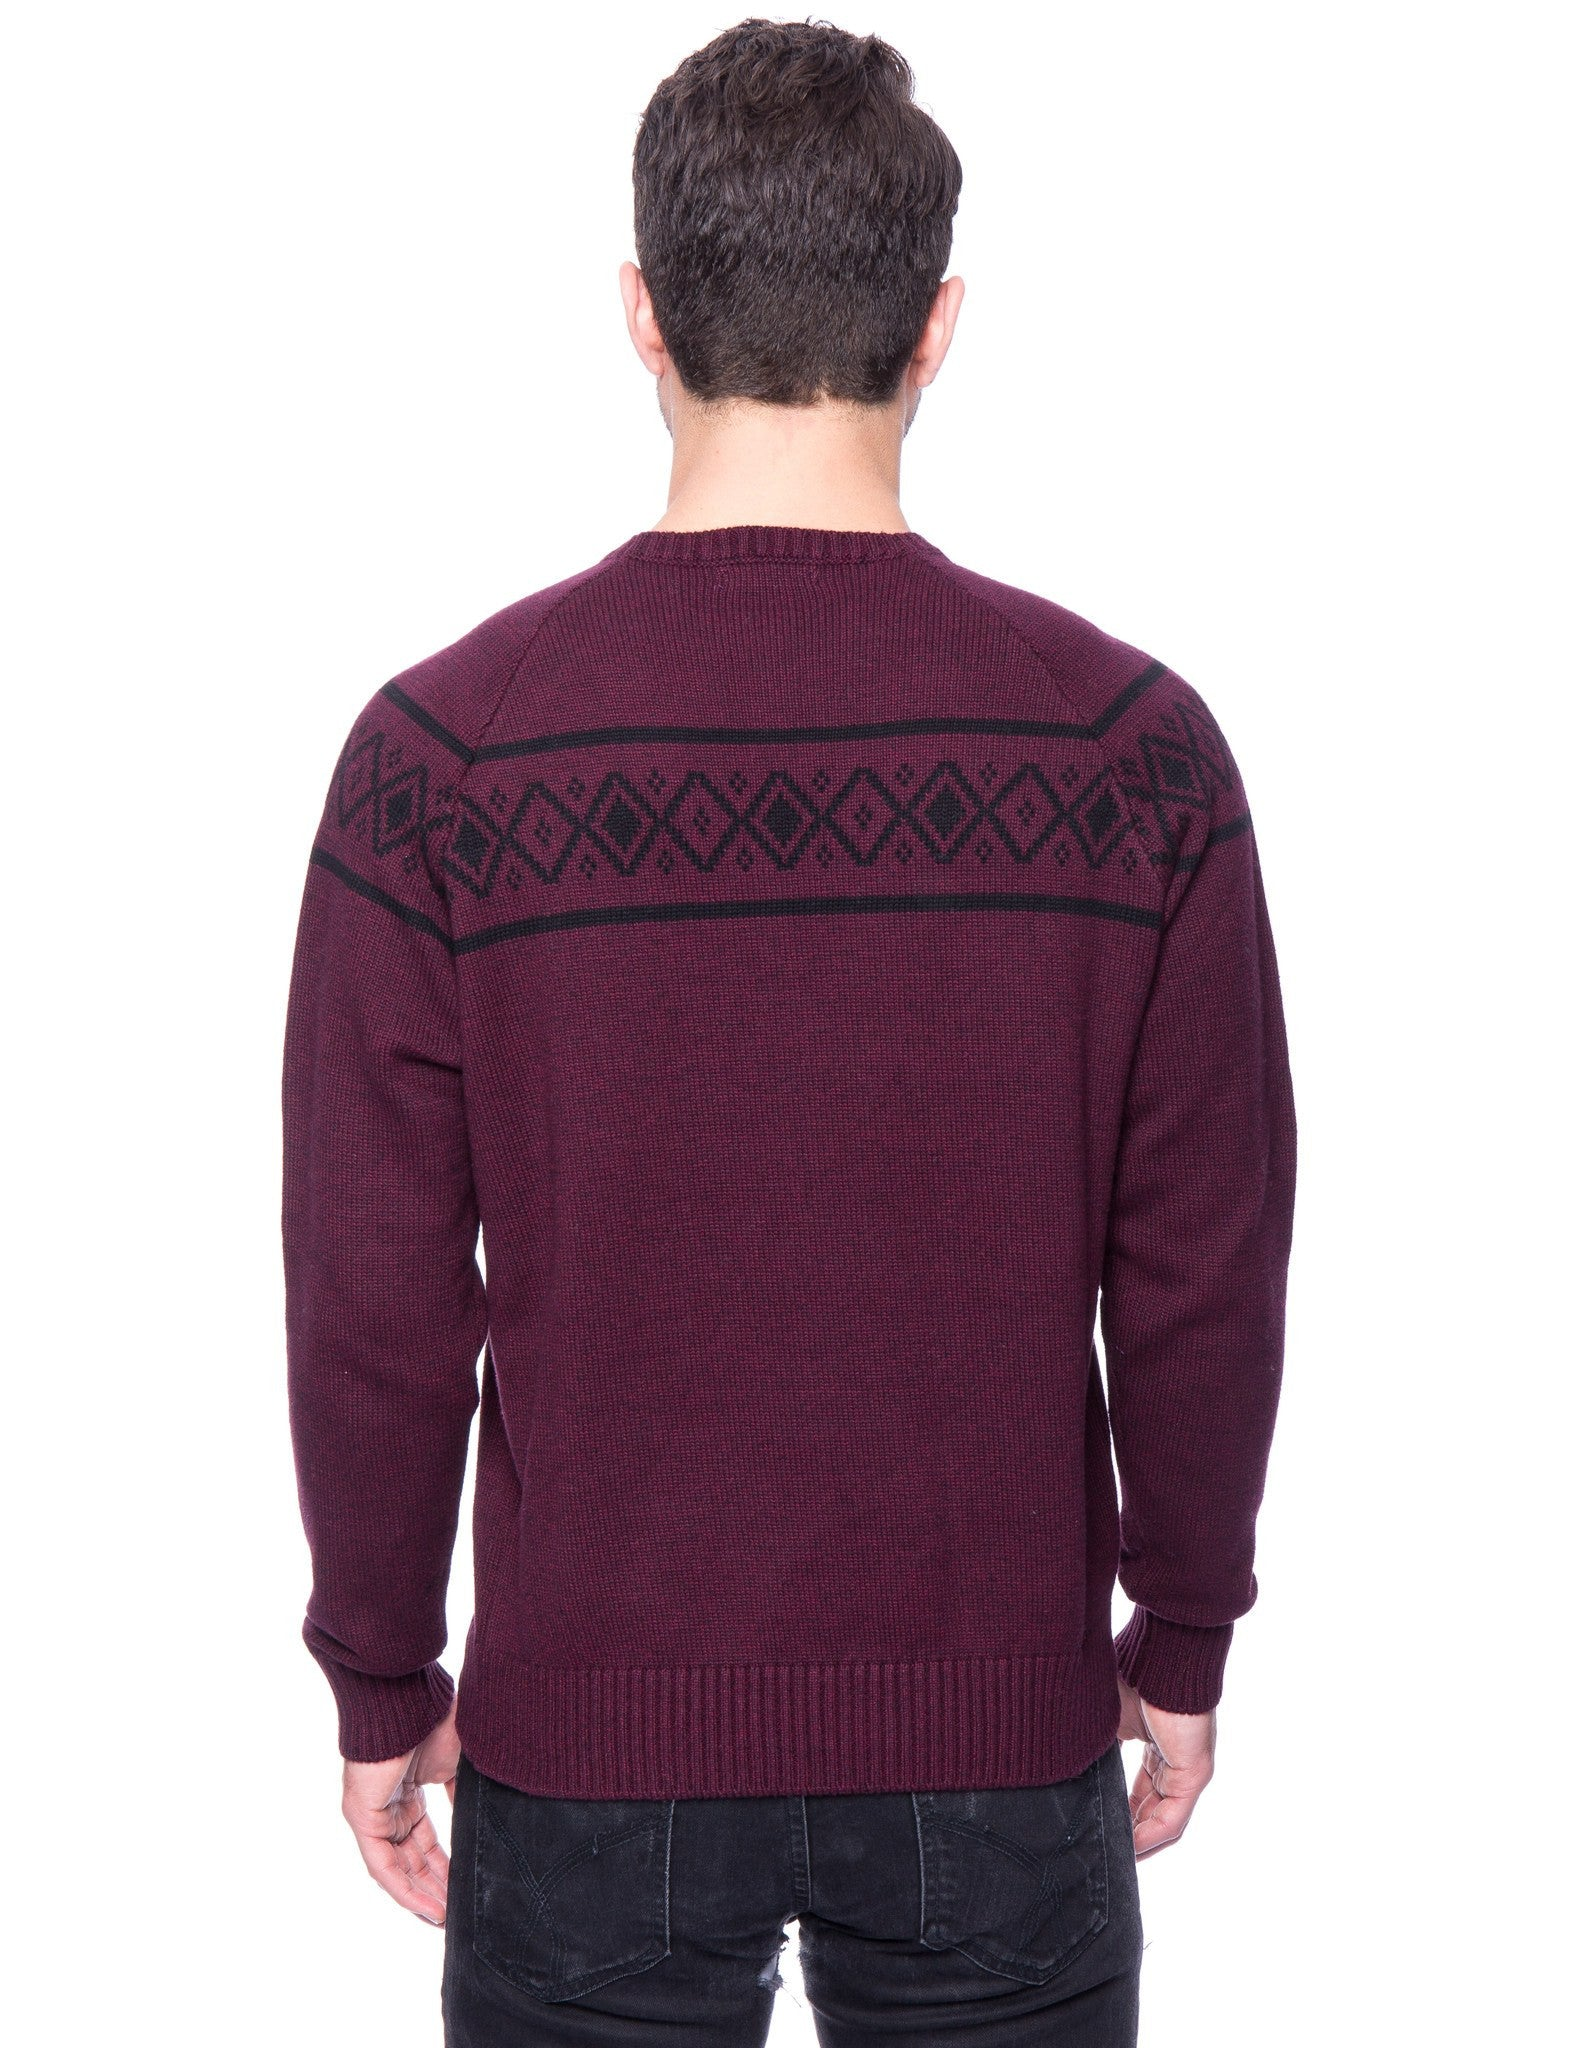 Marl Burgundy/Black